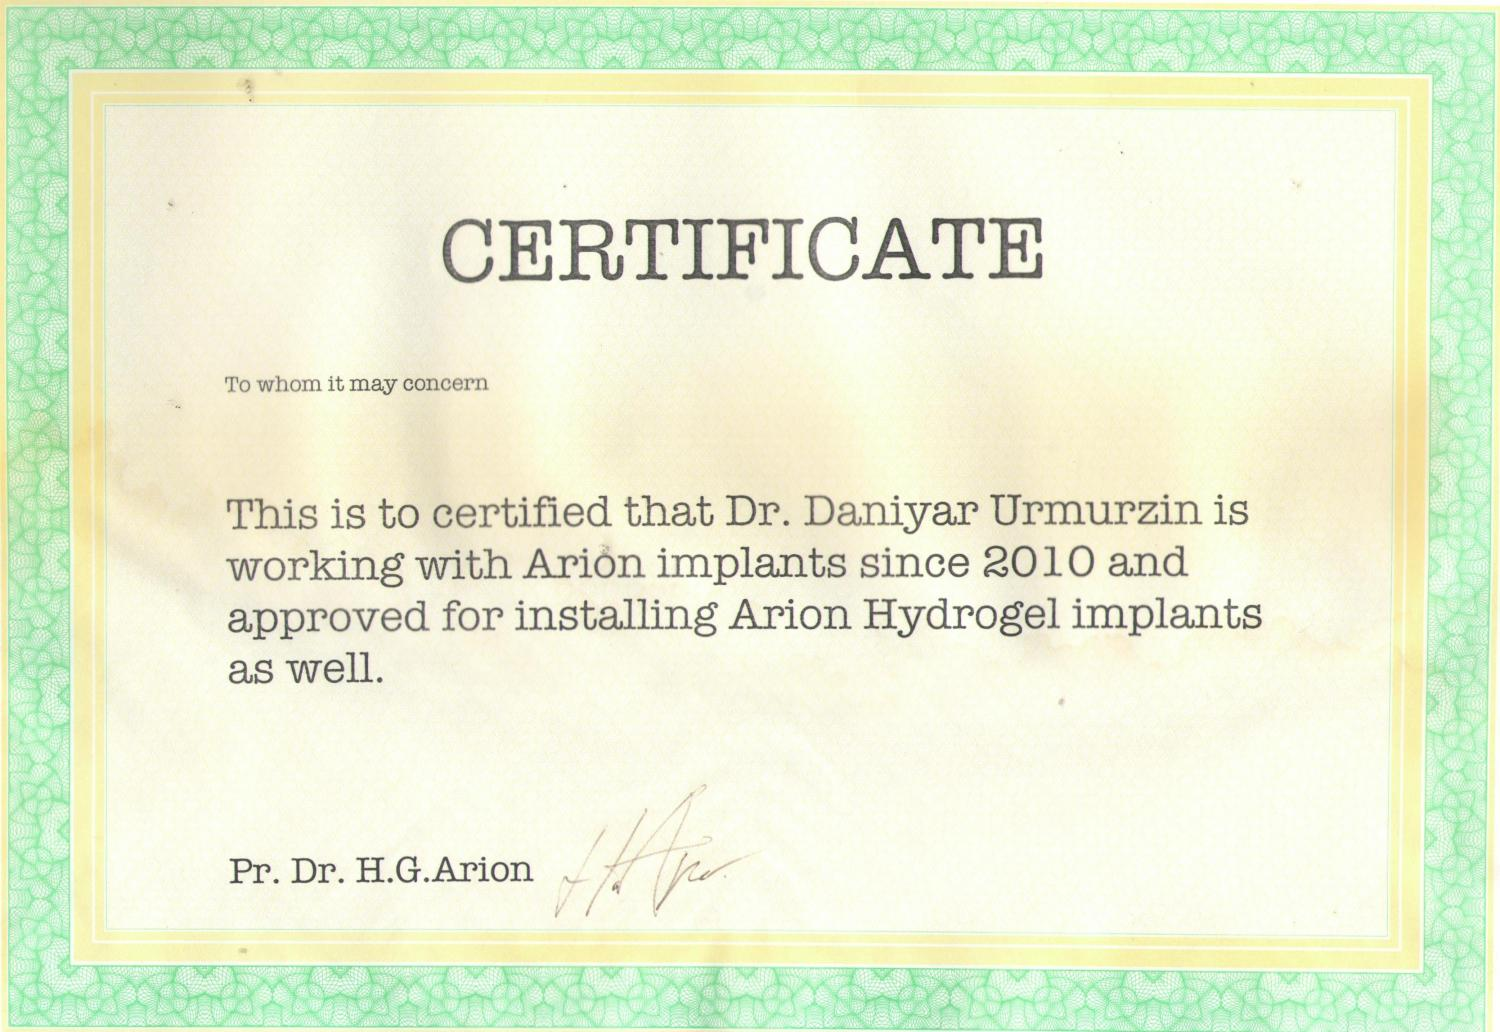 Arion Hydrogel Implants. 2010